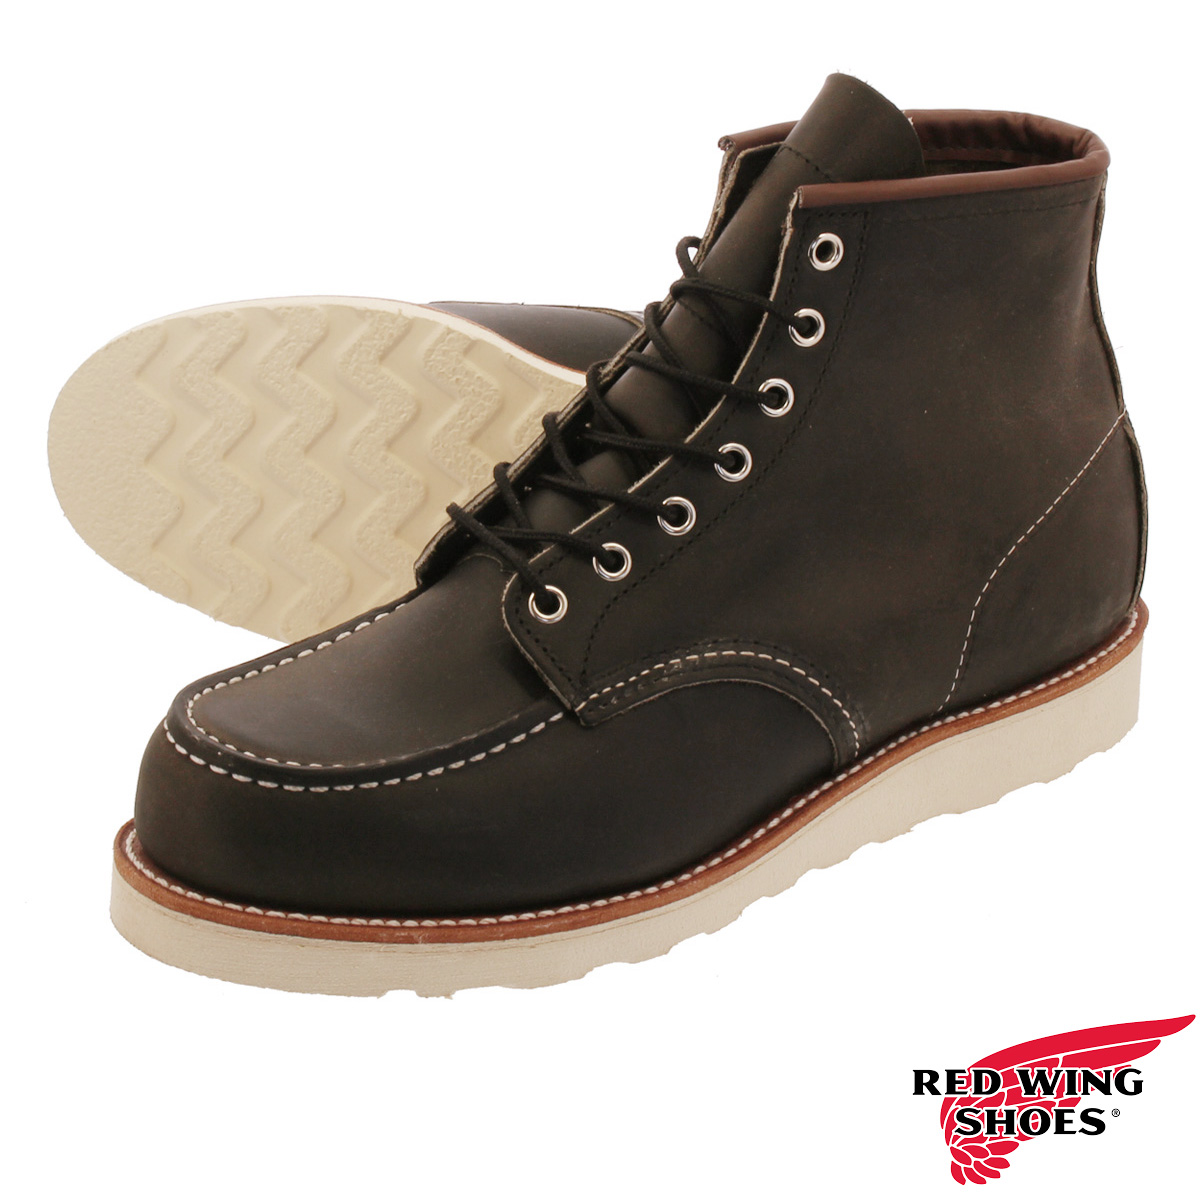 RED WING 6inch CLASSIC MOC TOE 【Dワイズ】 レッドウィング 6インチ クラシック モック トゥ CHARCOAL ROUGH rw-8890